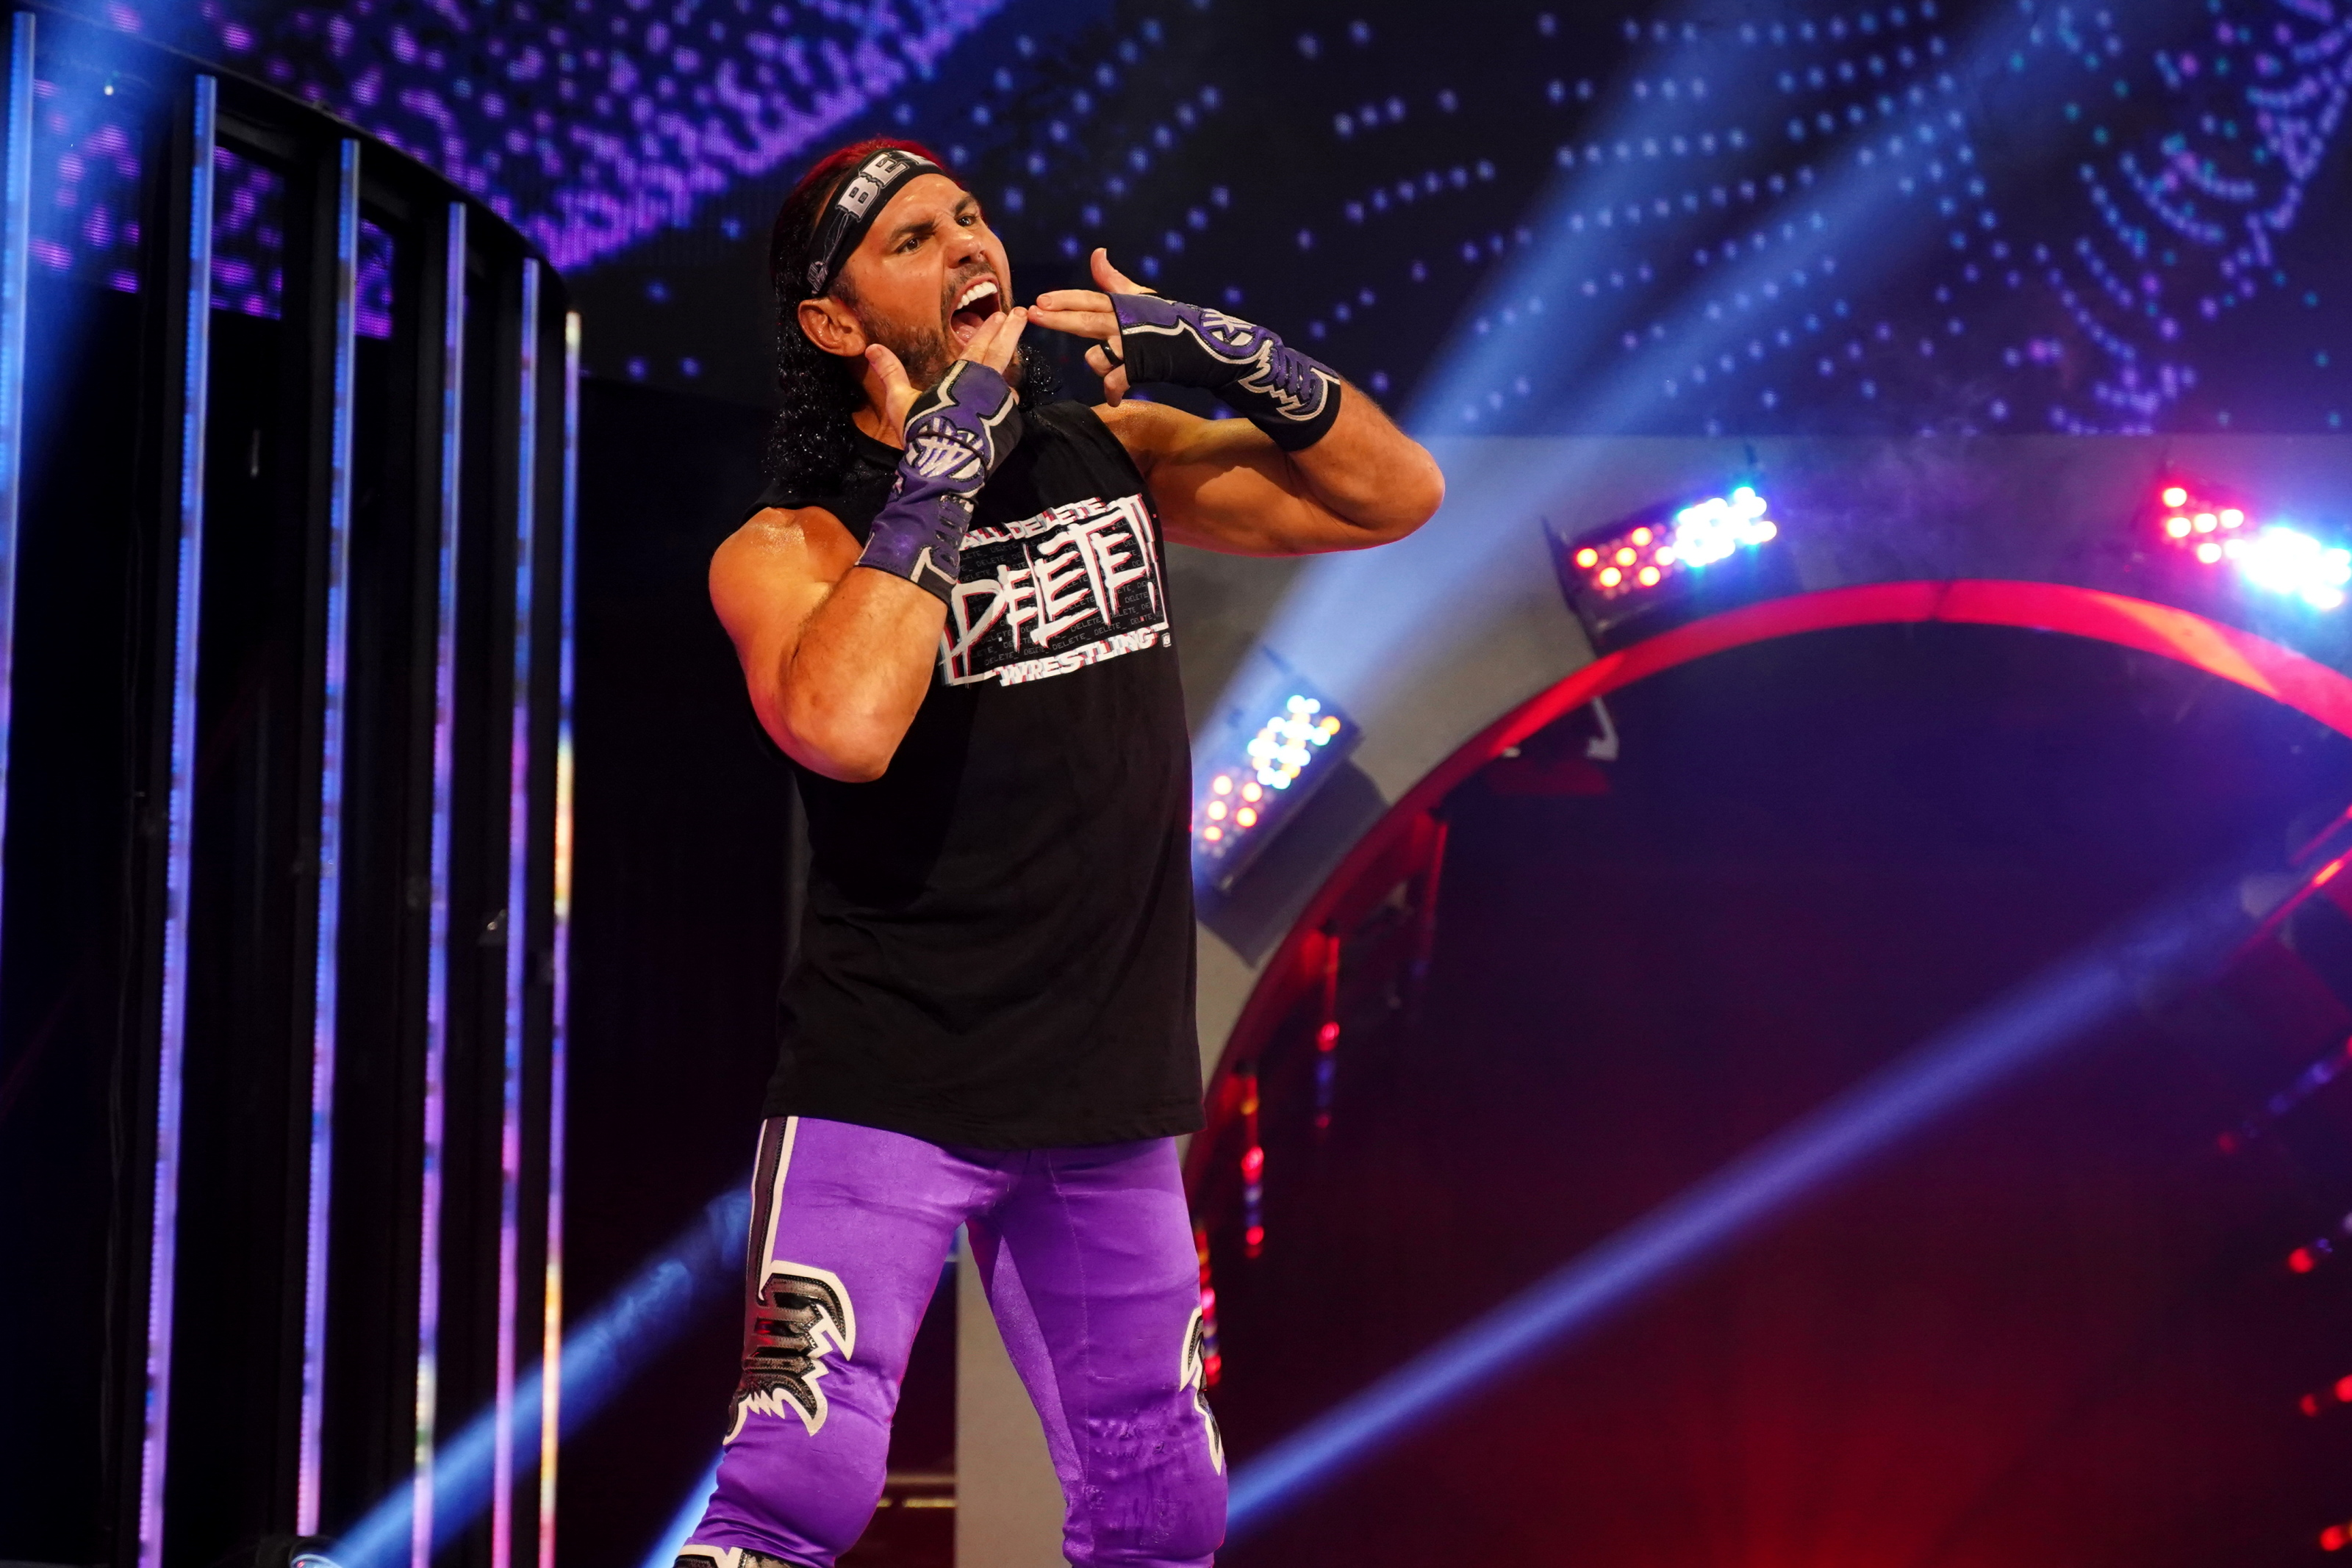 Matt Hardy shouldn't have finished match, AEW must learn from mistake